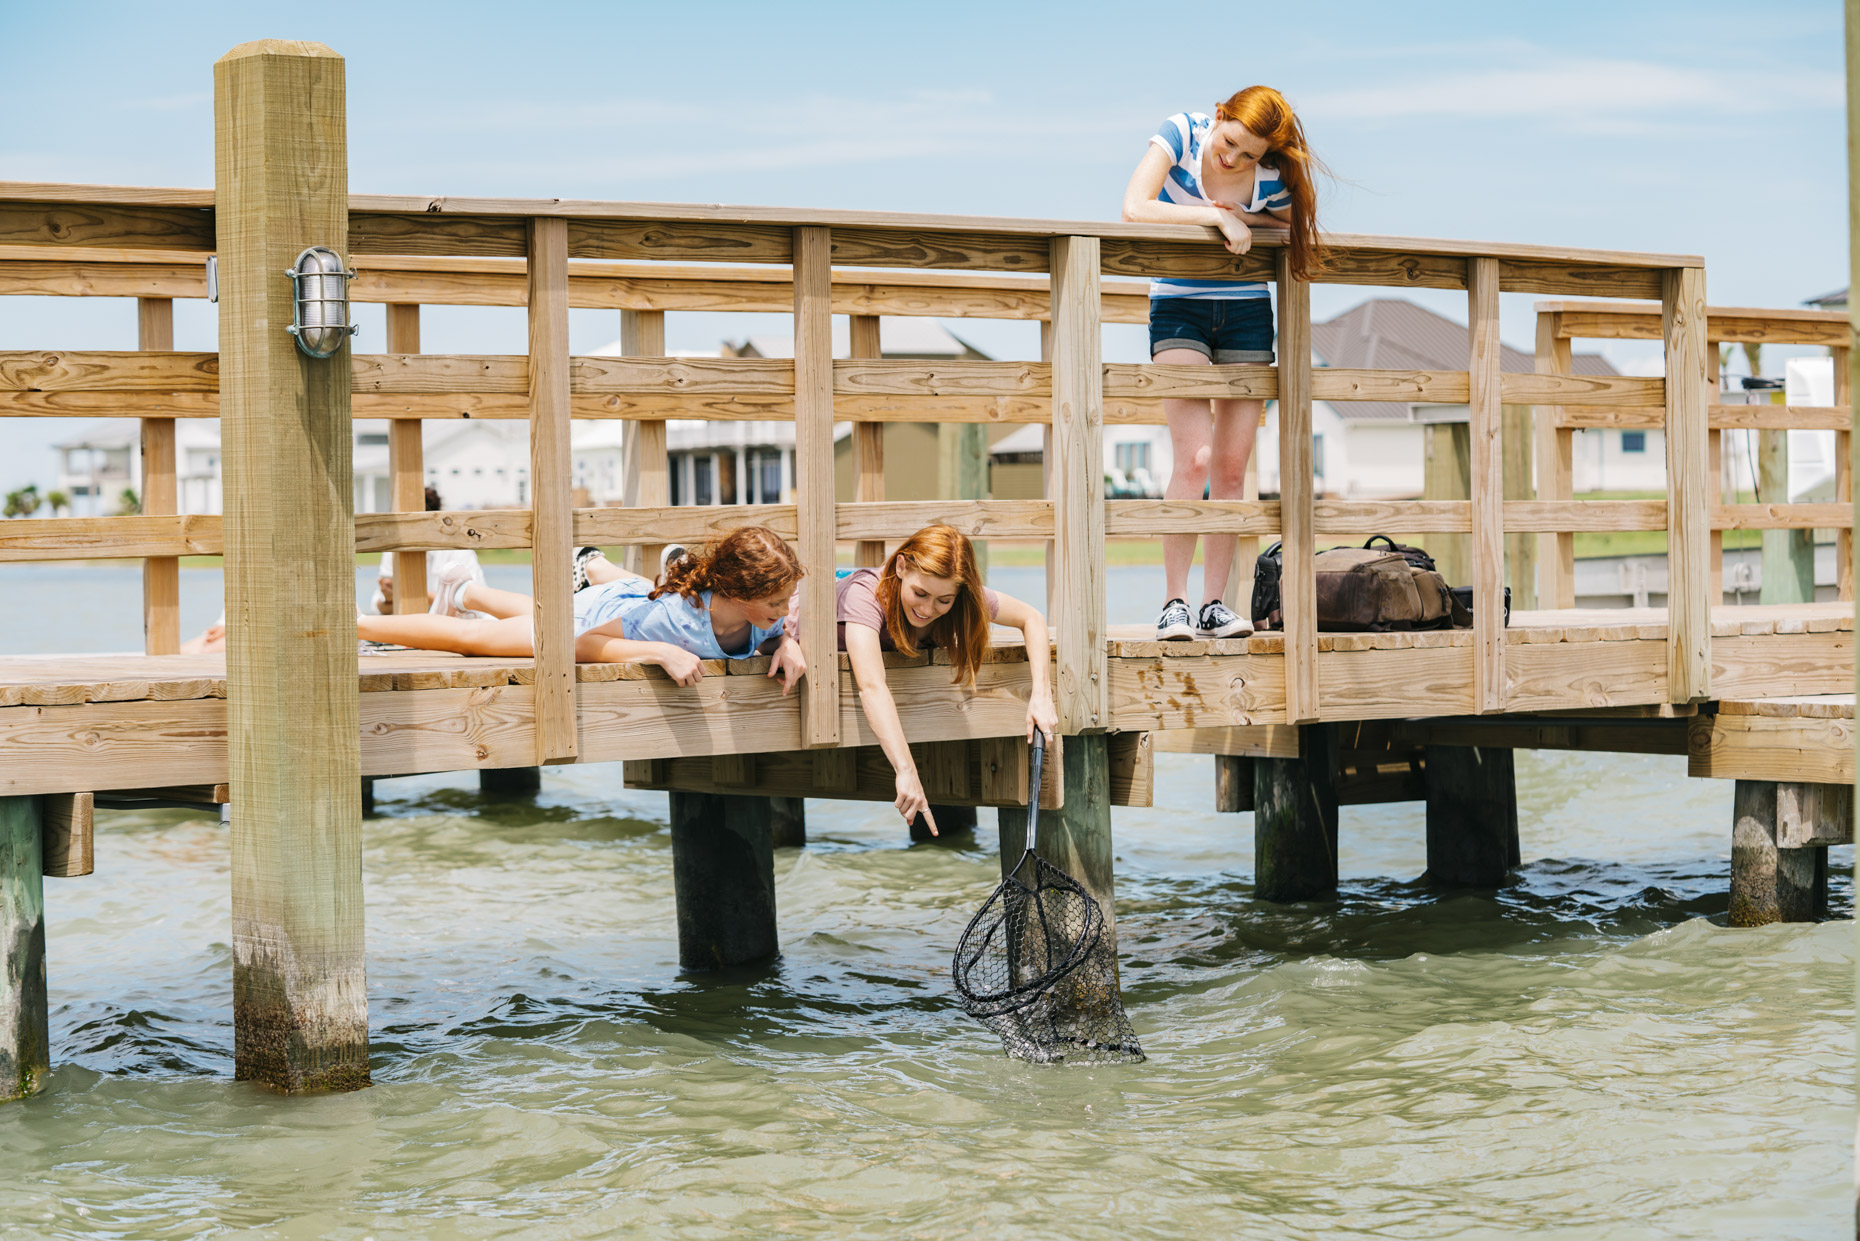 Red haired girls fishing with net from dock